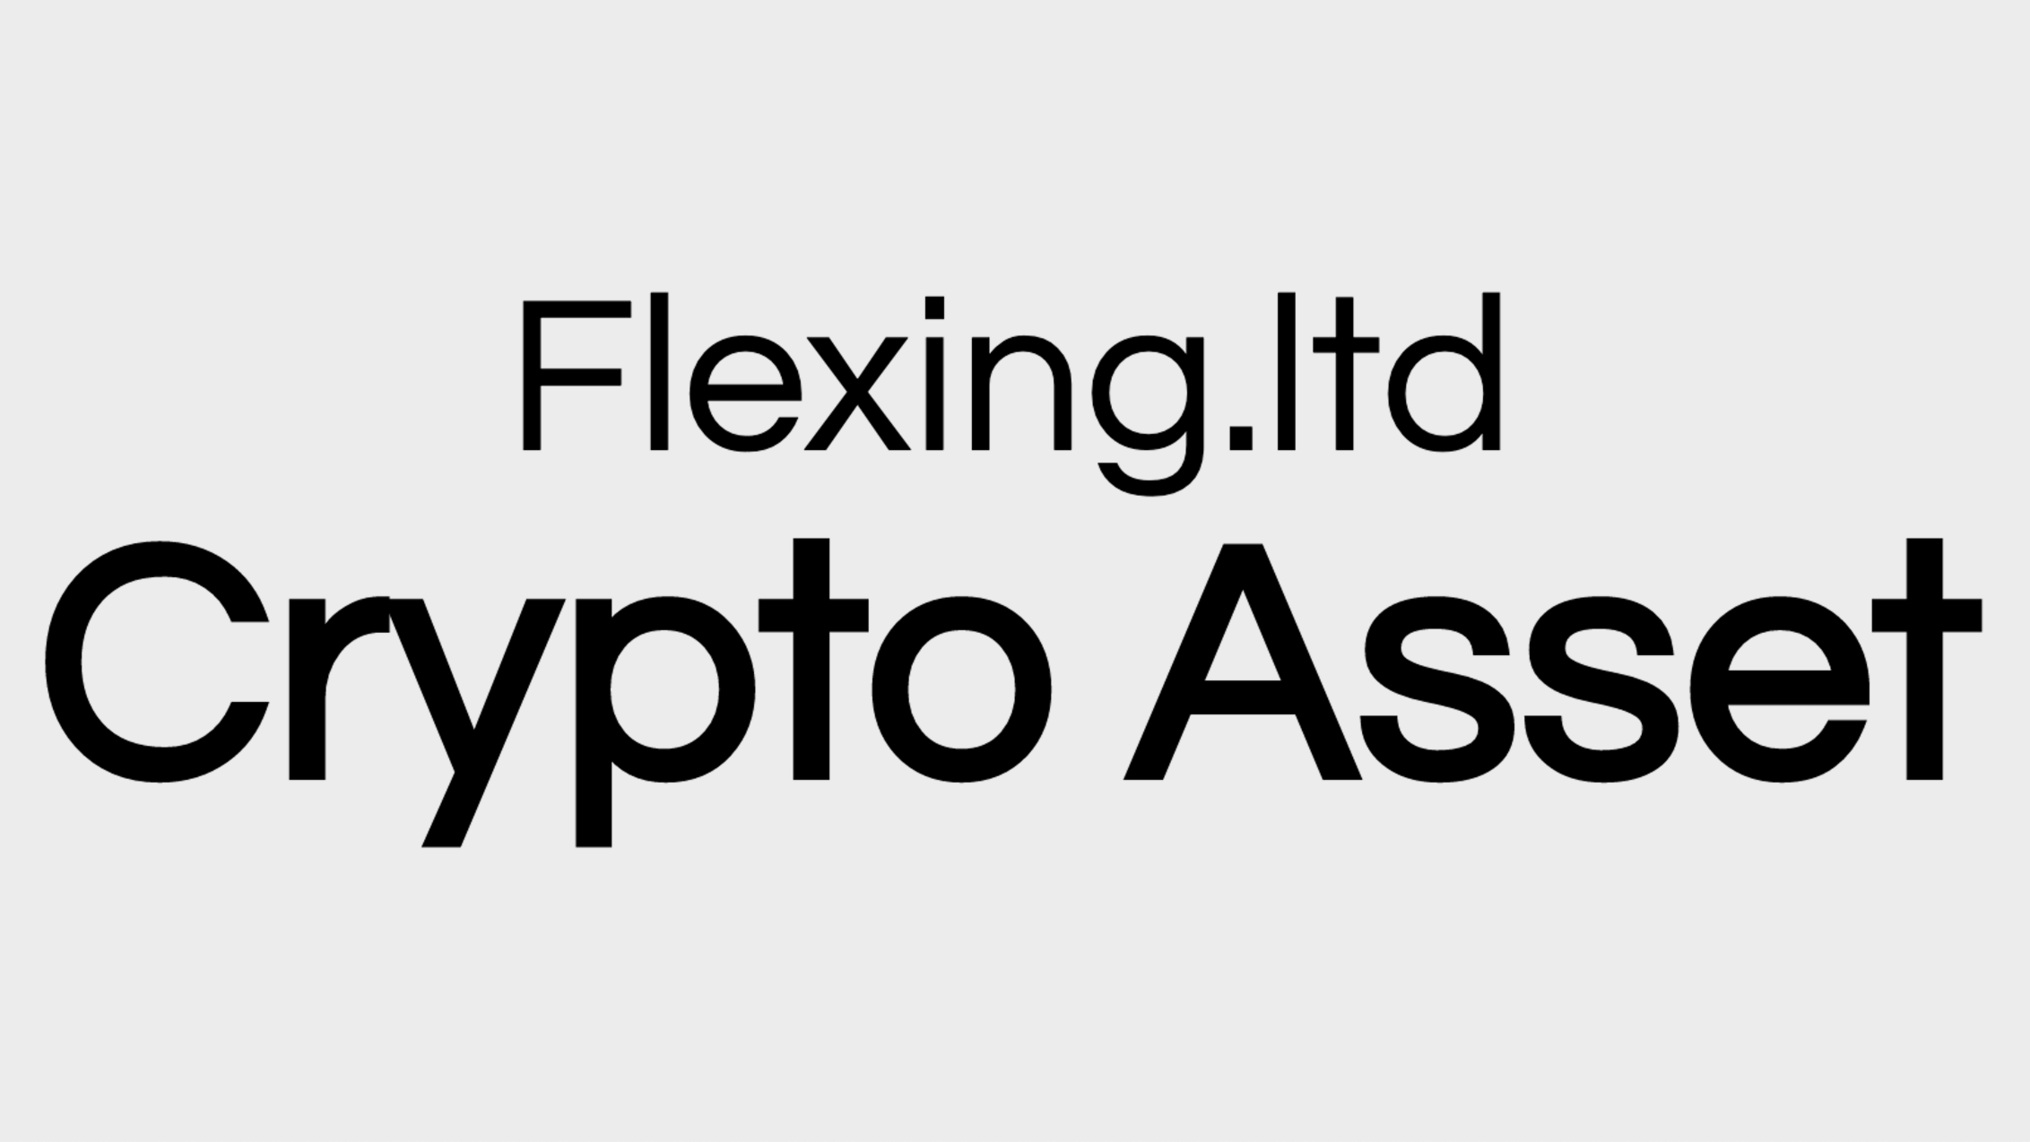 $5 / Week - - Access to Buy & Hold- Crypto Portfolios- Crypto EducationalExplore and learn crypto assets. You will learn to buy and manage crypto as part of your portfolio.Suitable for risk-tolerant investors.